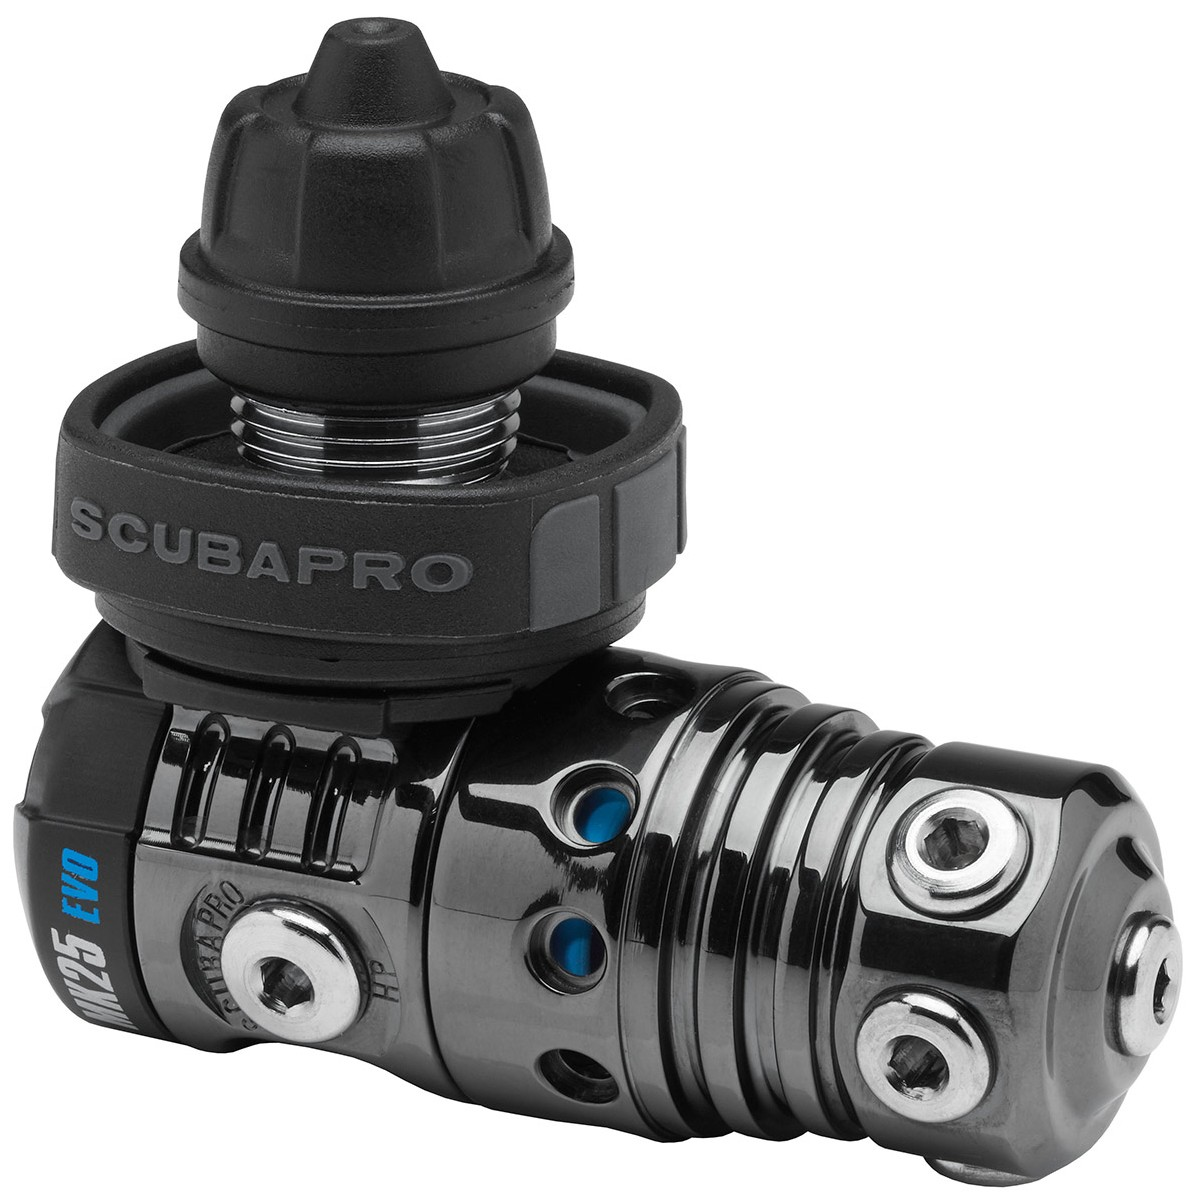 Scubapro MK25 EVO/A700 Carbon Black Tech Regulator